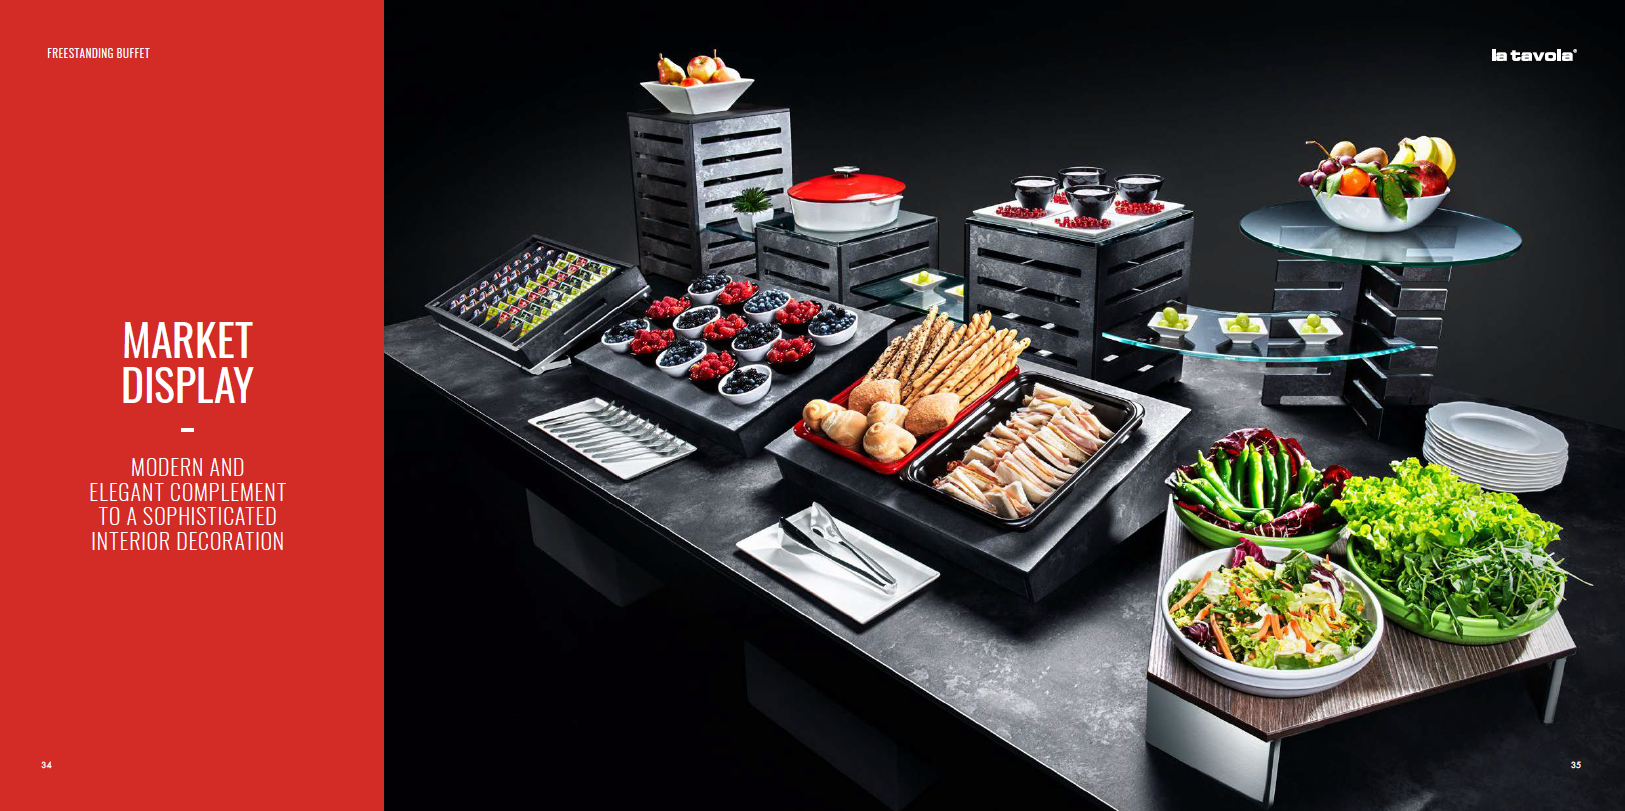 Buffet Tables Breakfast – Bespoke Italy – Robert Dunn Hotel Within Modern Red Buffets (View 22 of 30)